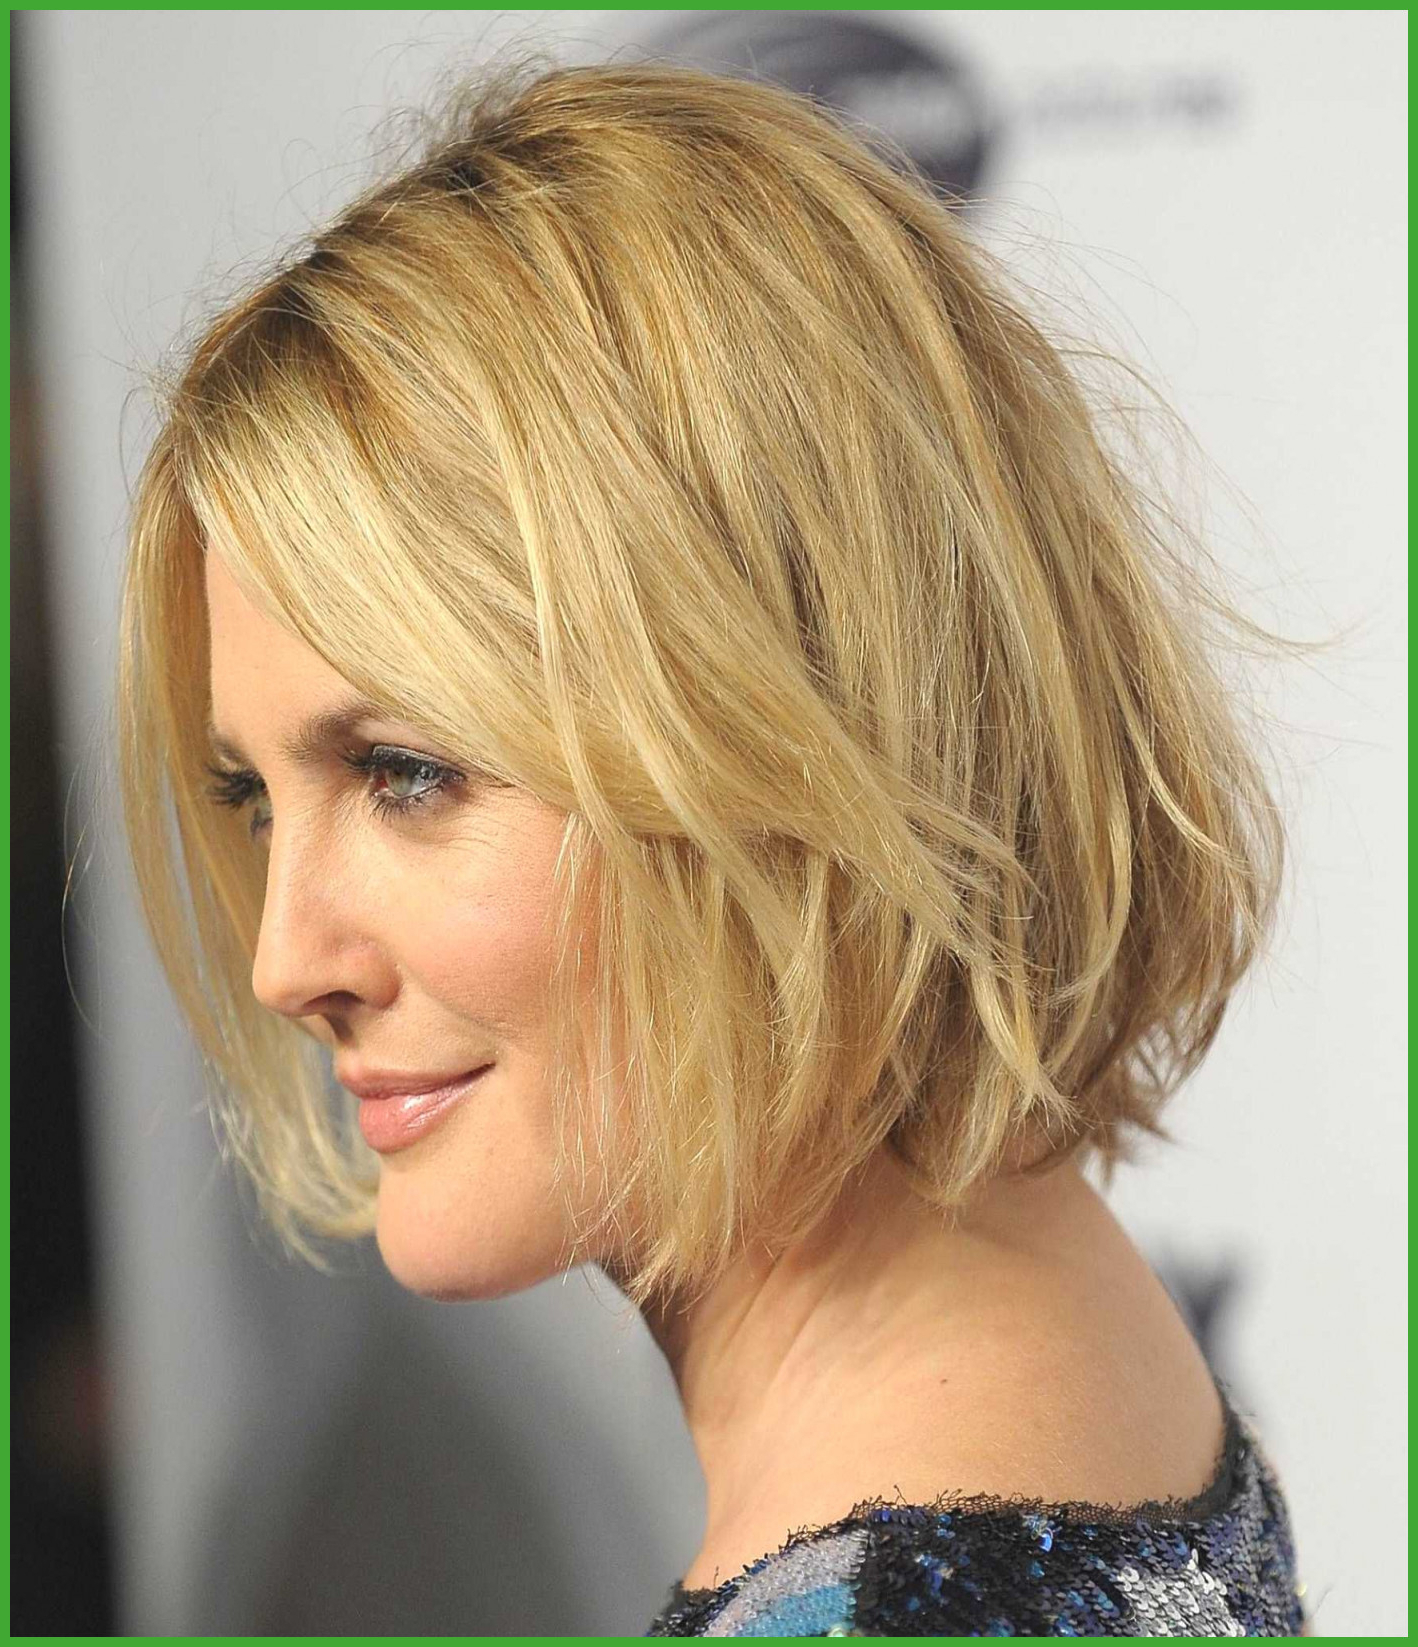 Drew Barrymore Short Hairstyles Awesome 20 Awesome Layered Haircut Within Drew Barrymore Short Hairstyles (Gallery 1 of 25)